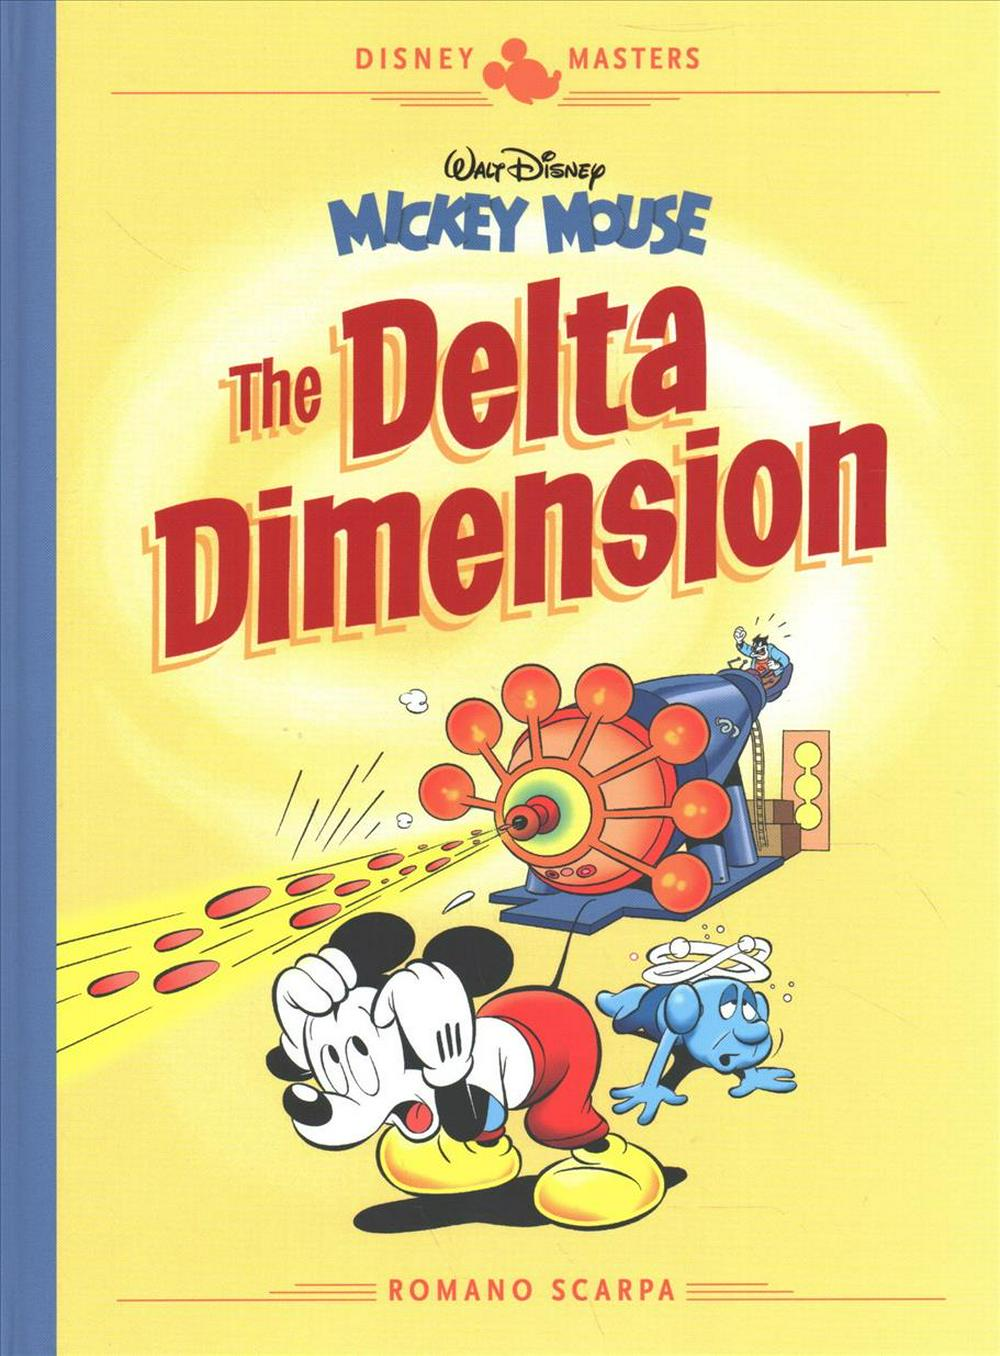 Disney Masters Collector's Box Set #1 (Vol. 1)  (Walt Disney's Mickey Mouse) by Romano Scarpa, ISBN: 9781683961512